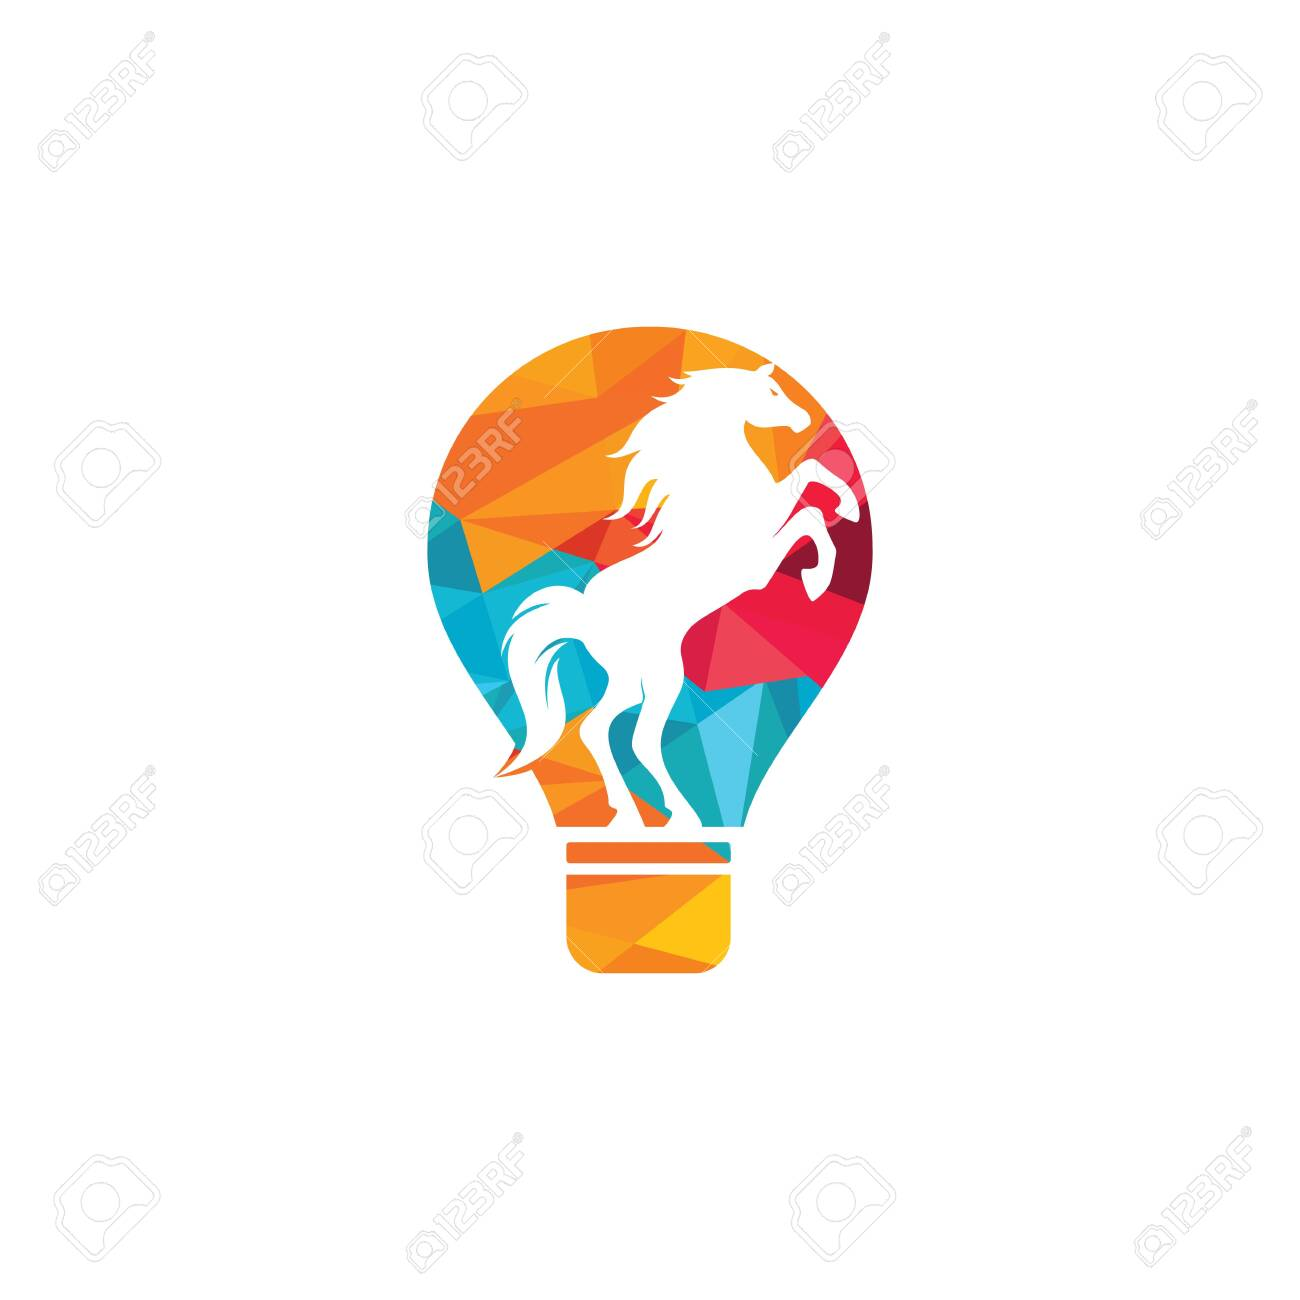 Light Bulb And Horse Logo Design Wild Ideas Logo Concept Royalty Free Cliparts Vectors And Stock Illustration Image 151283326